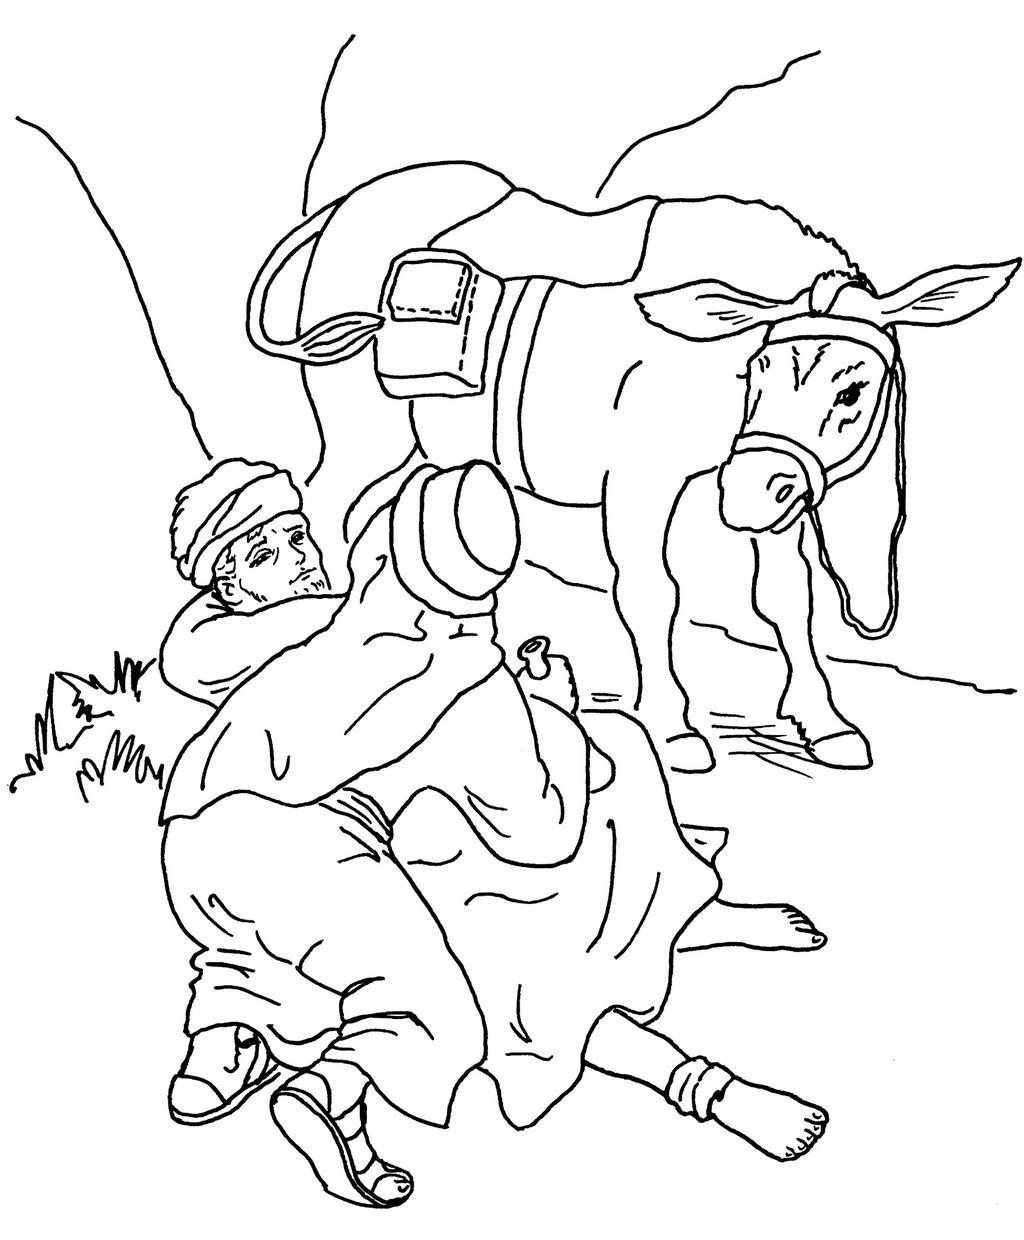 Free The Good Samaritan Coloring Pages  for Kids printable